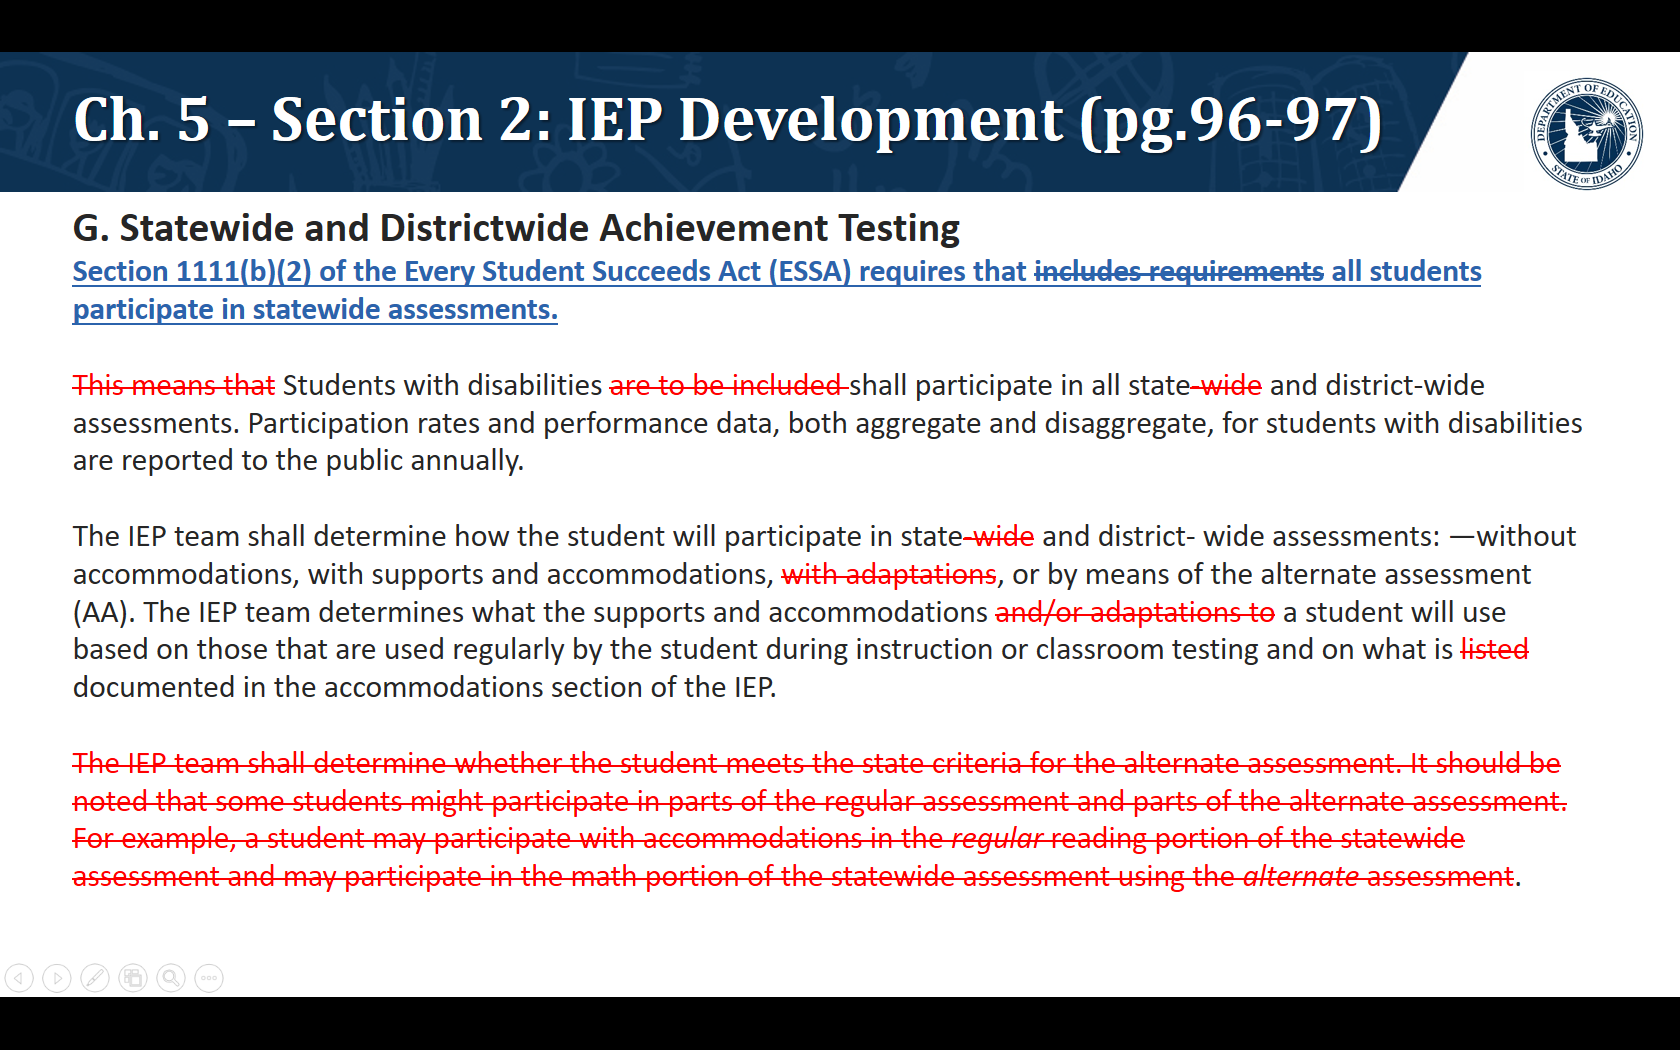 G. Statewide and Districtwide Achievement Testing . Section 1111(b)(2) of the Every Student Succeeds Act (ESSA) requires that includes requirements all students participate in statewide assessments.   Students with disabilities shall participate in all state and district-wide assessments. Participation rates and performance data, both aggregate and disaggregate, for students with disabilities are reported to the public annually.    The IEP team shall determine how the student will participate in state and district- wide assessments: —without accommodations, with supports and accommodations, or by means of the alternate assessment (AA). The IEP team determines what the supports and accommodations a student will use based on those that are used regularly by the student during instruction or classroom testing and on what is documented in the accommodations section of the IEP.